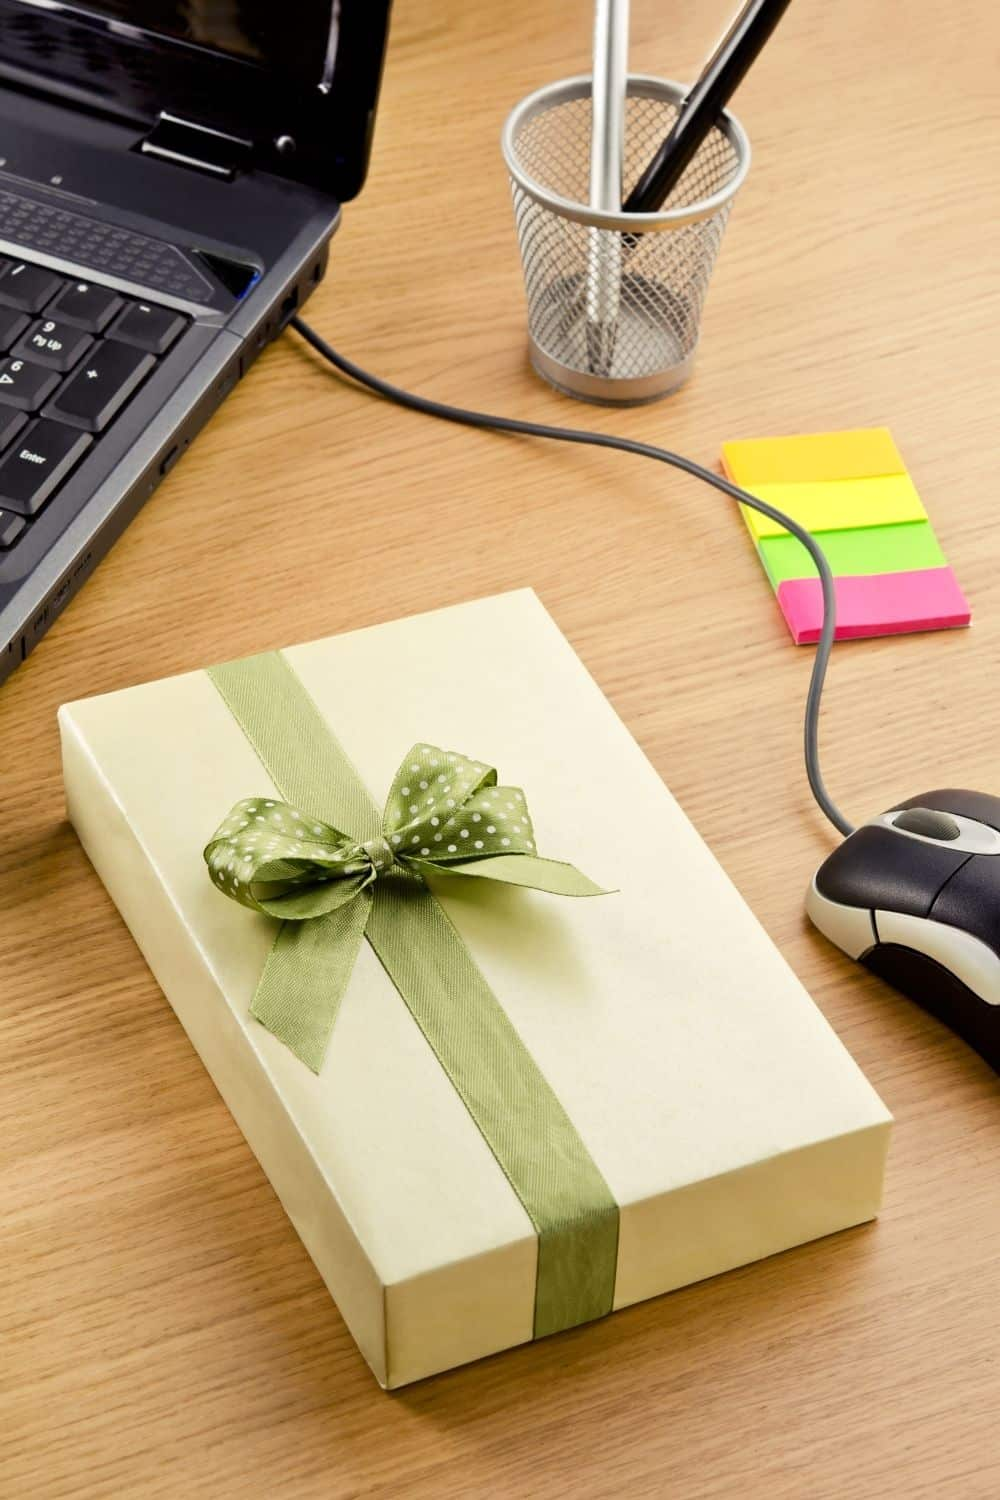 A gift sits on a desk next to a laptop